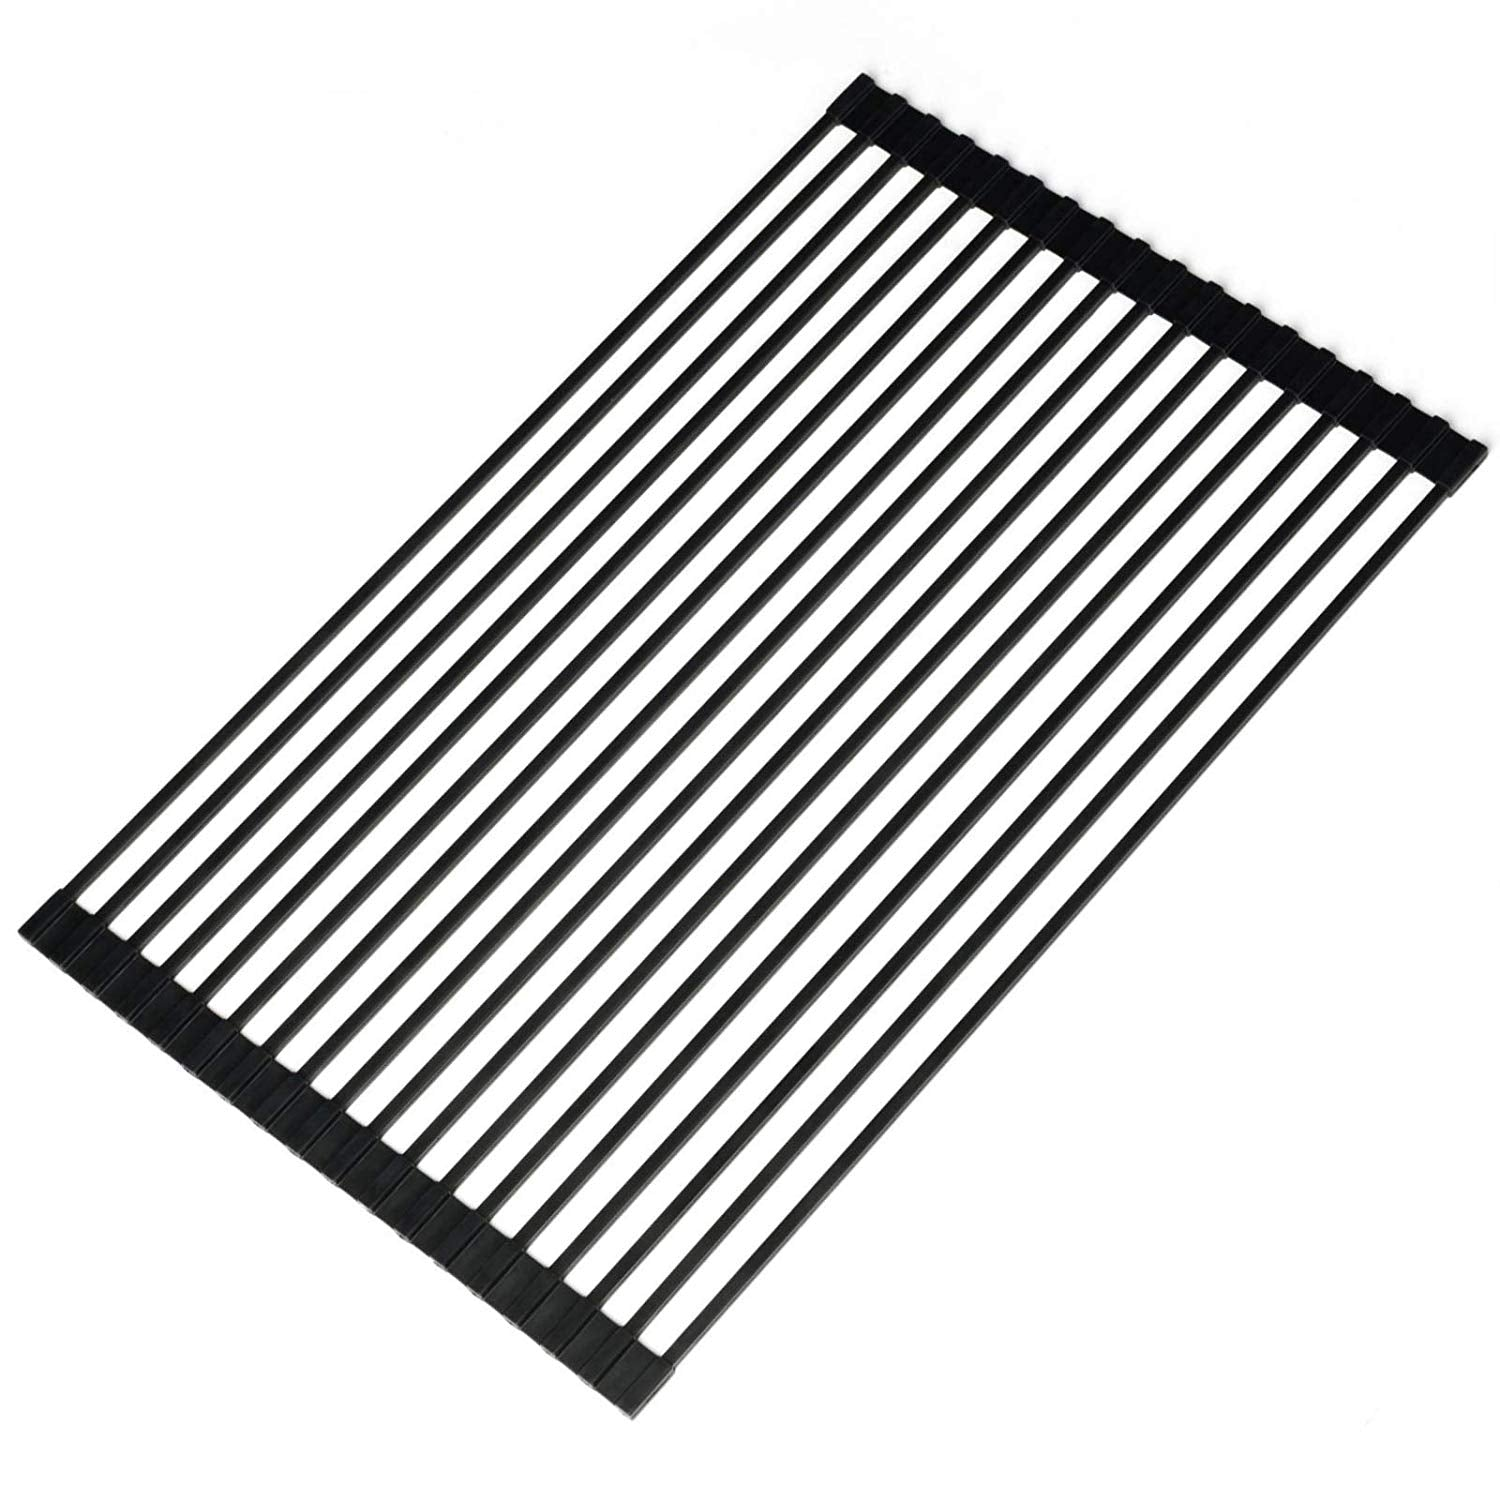 Ahyuan Large Roll-up Dish Drying Rack Square Solid Bars Multipurpose Silicone Coated Stainless Still Dishes Drainer Rack Large Foldable Over Sink Kitchen Drainer Rack (Metallic Black)